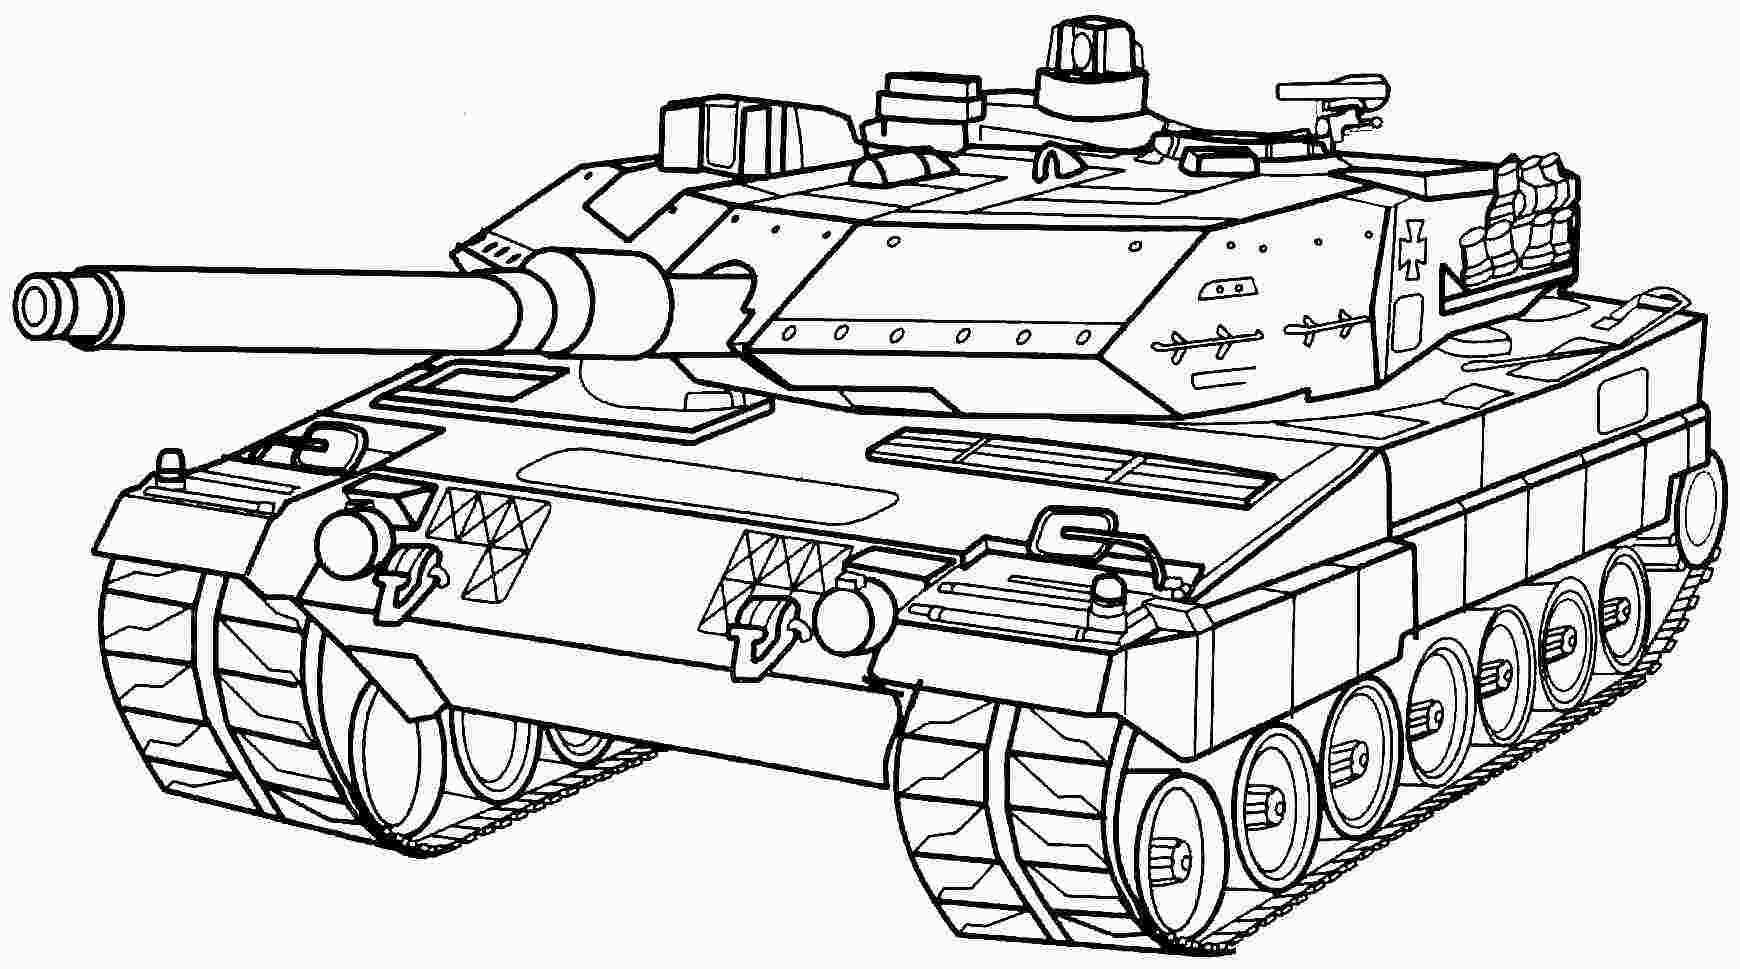 armee panzer malvorlagen kostenlos - coloring pages in